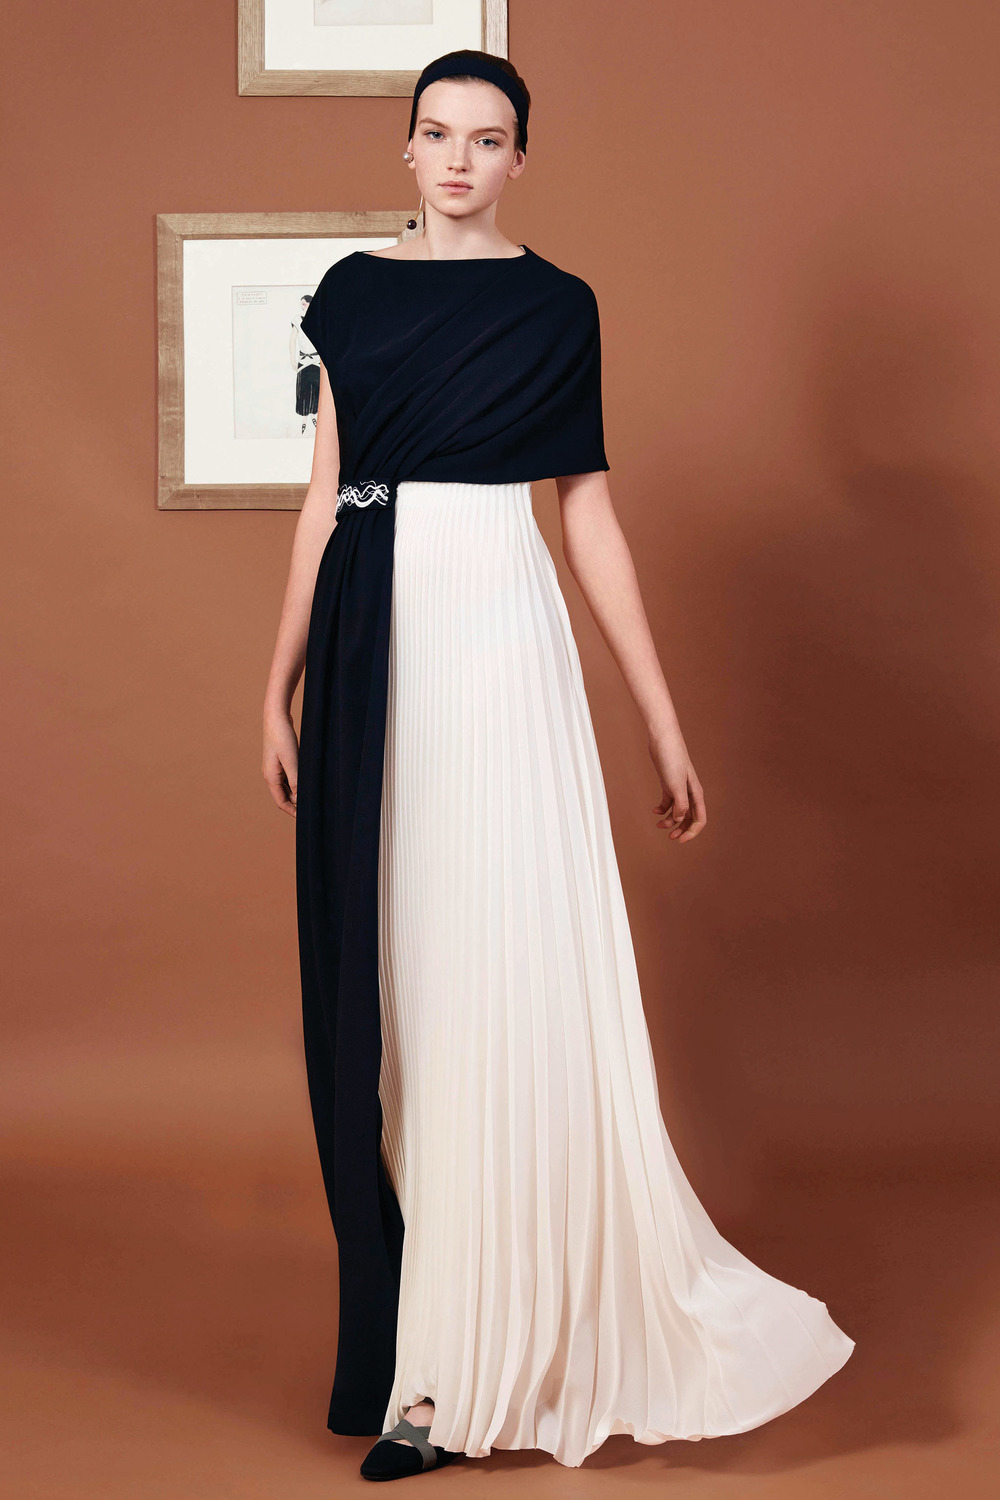 A 2016 interpretation gives a modern-day update to Vionnet's classic feminine forms.